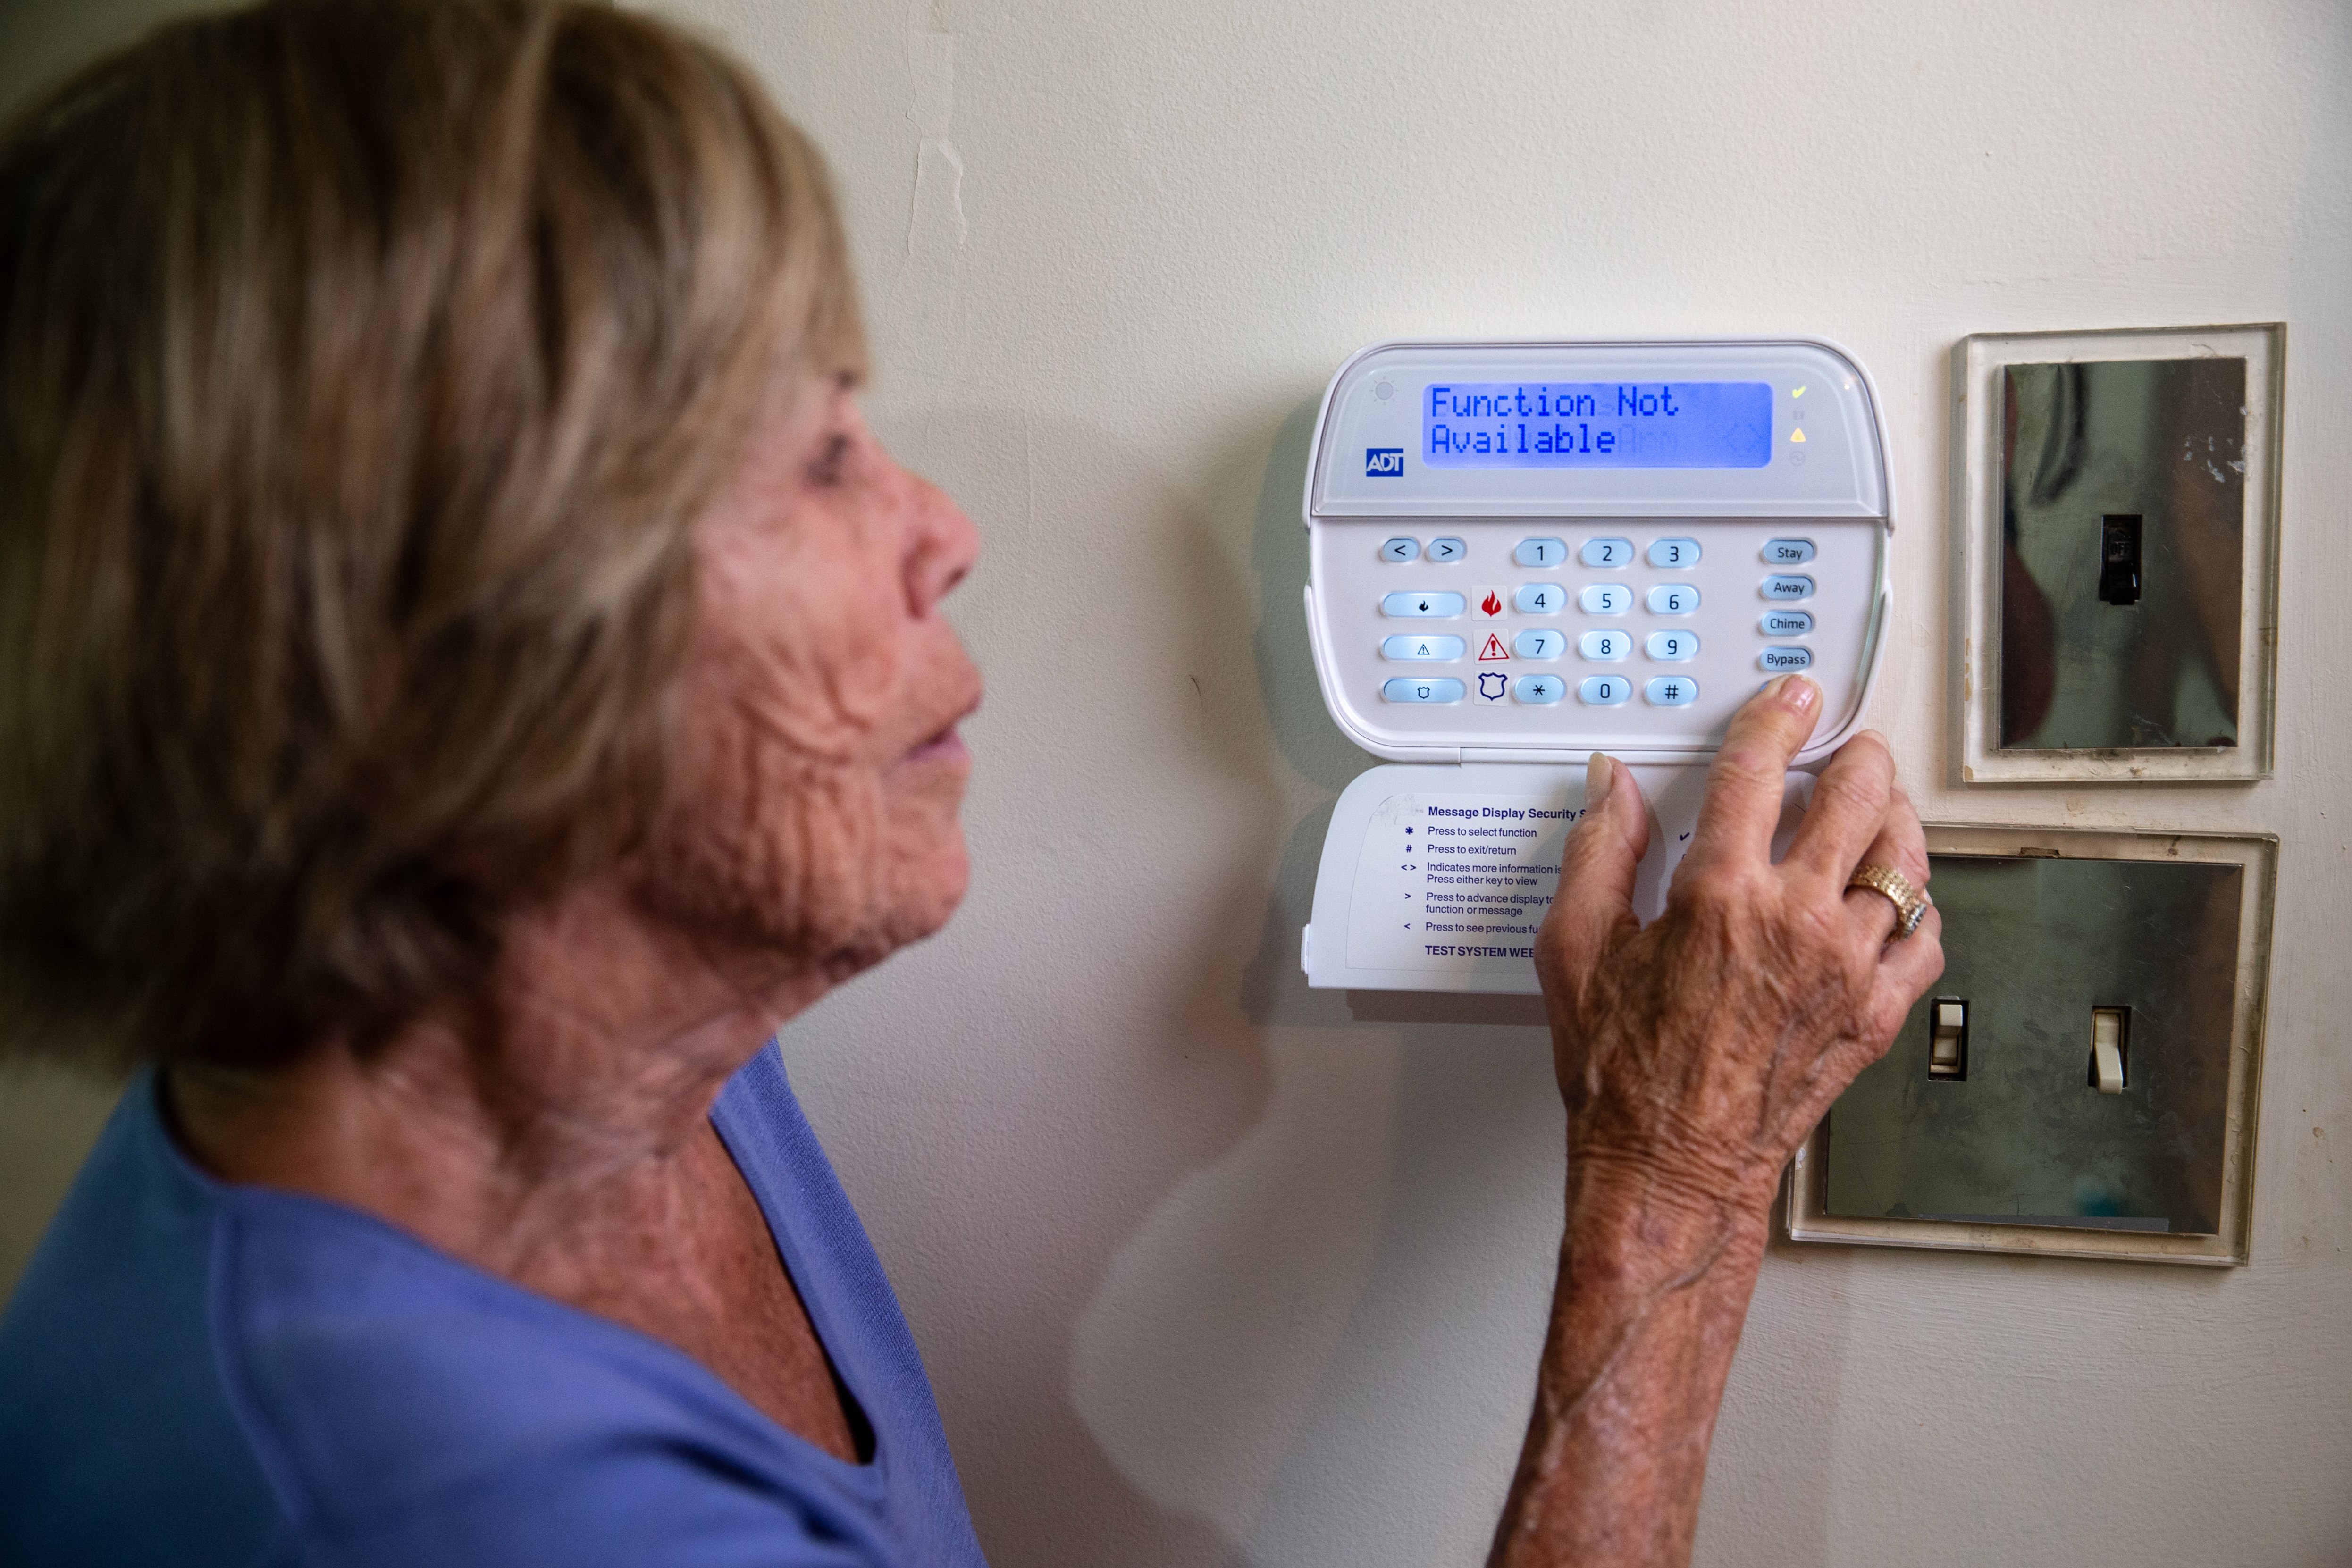 Home security system proved anything but - The Boston Globe